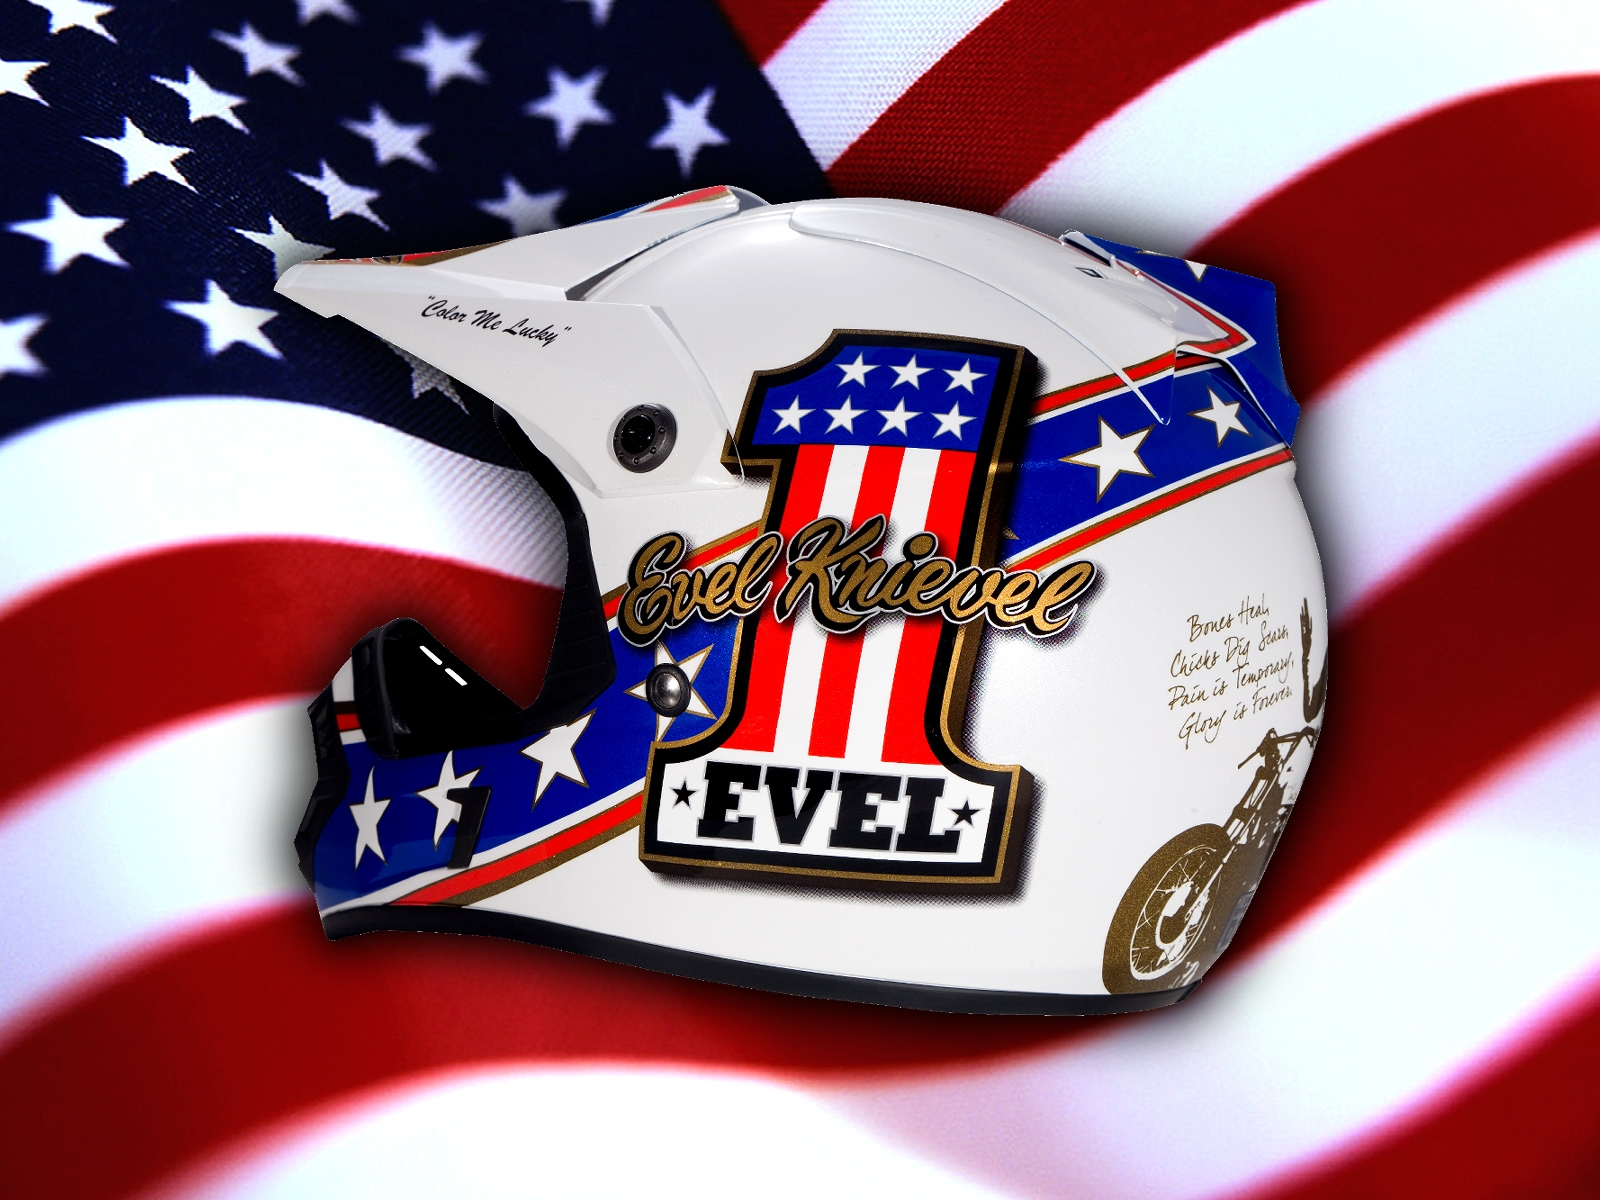 1600x1200 - Evel Knievel Wallpapers 9